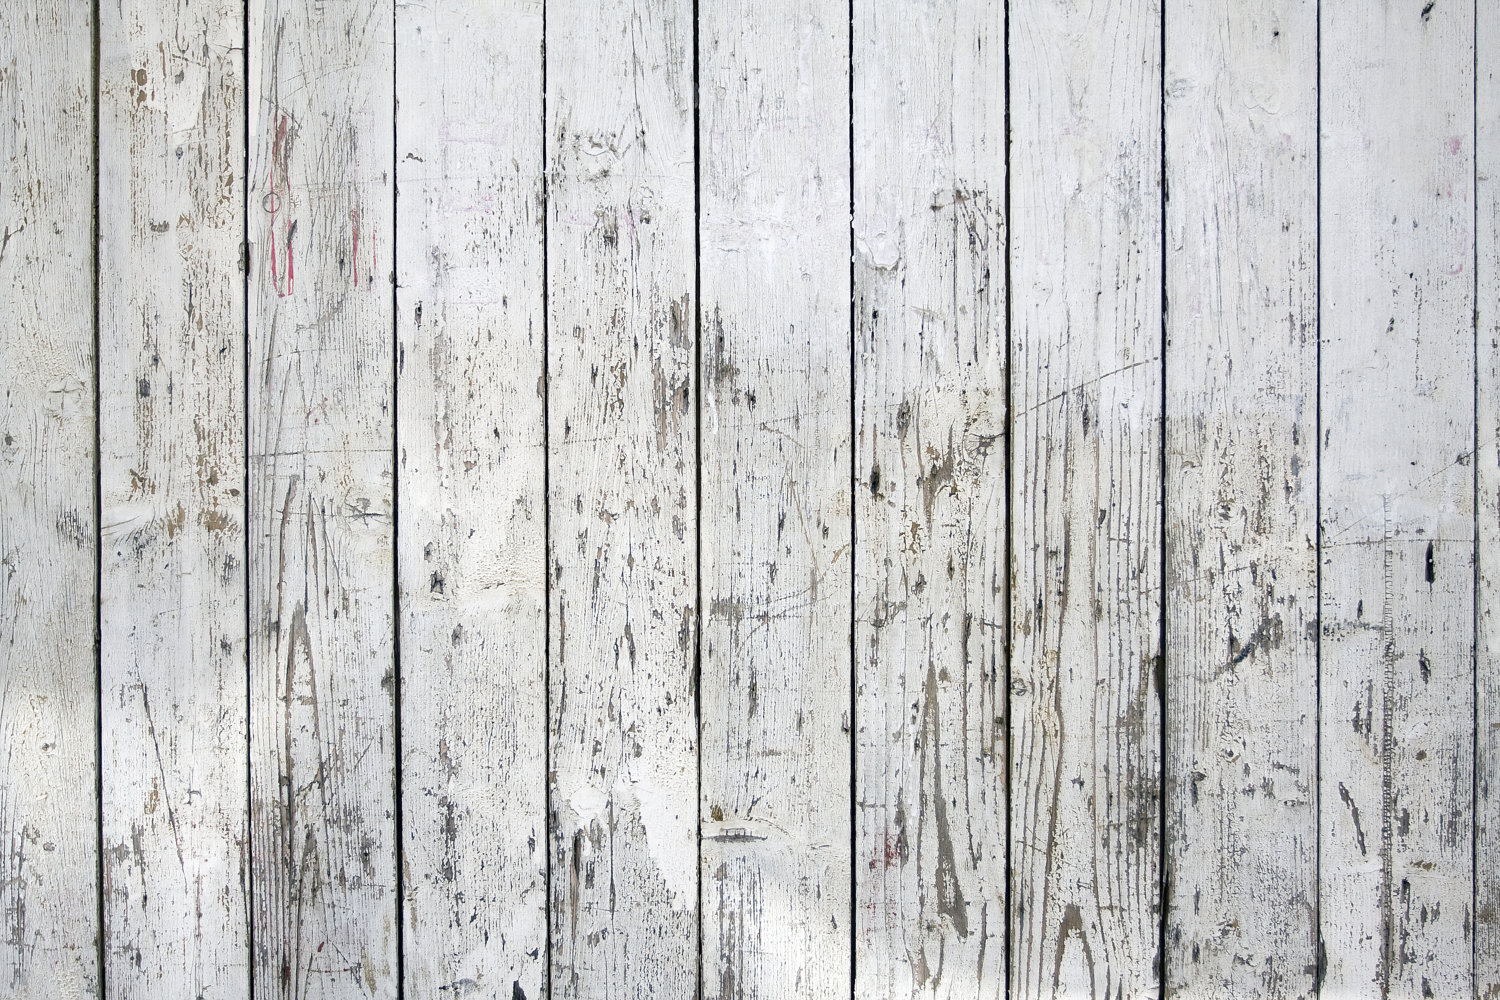 White Washed Wood Background Images & Pictures - Becuo HTML code